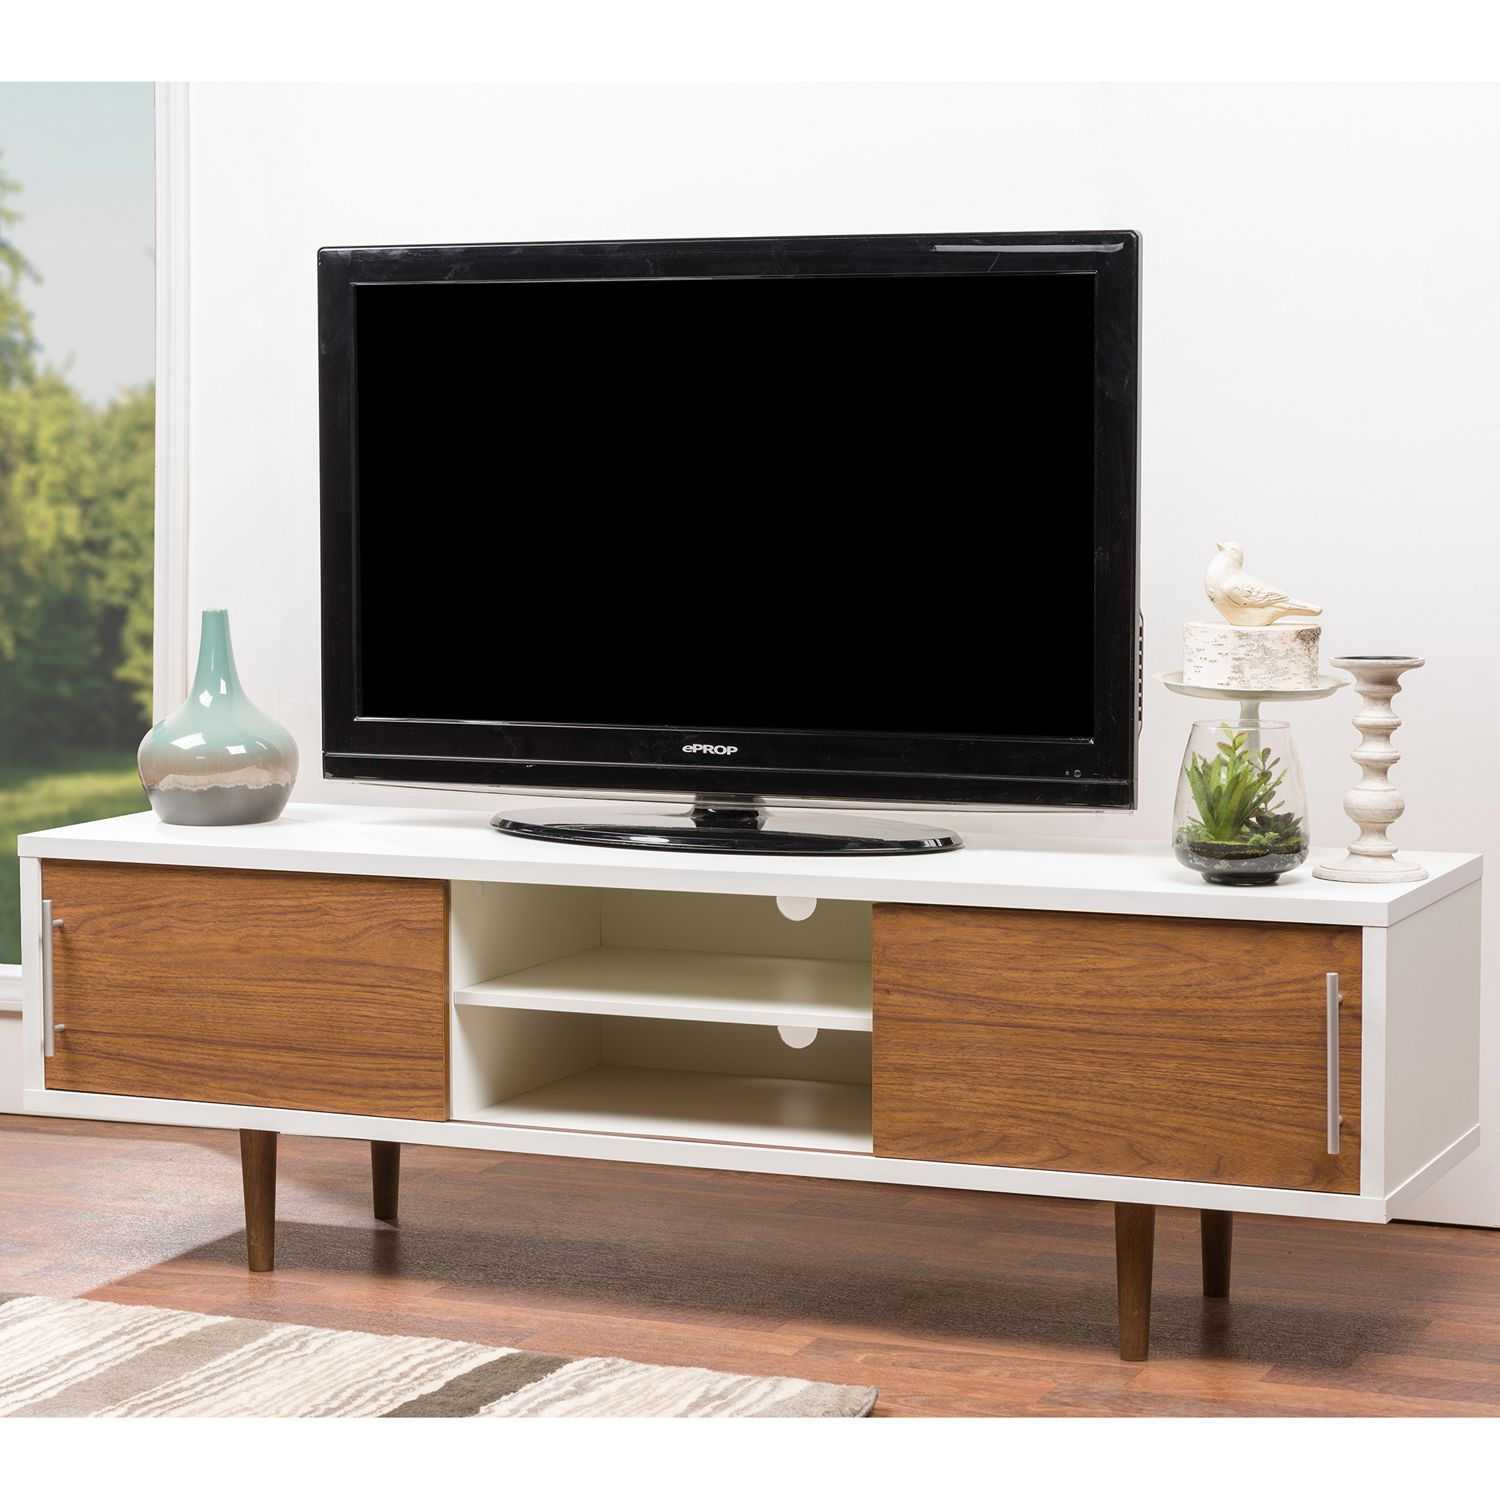 Twin Tones Intertwine Intensely In Our Gemini Wood Contemporary Tv  # Contemporary Tv Stands